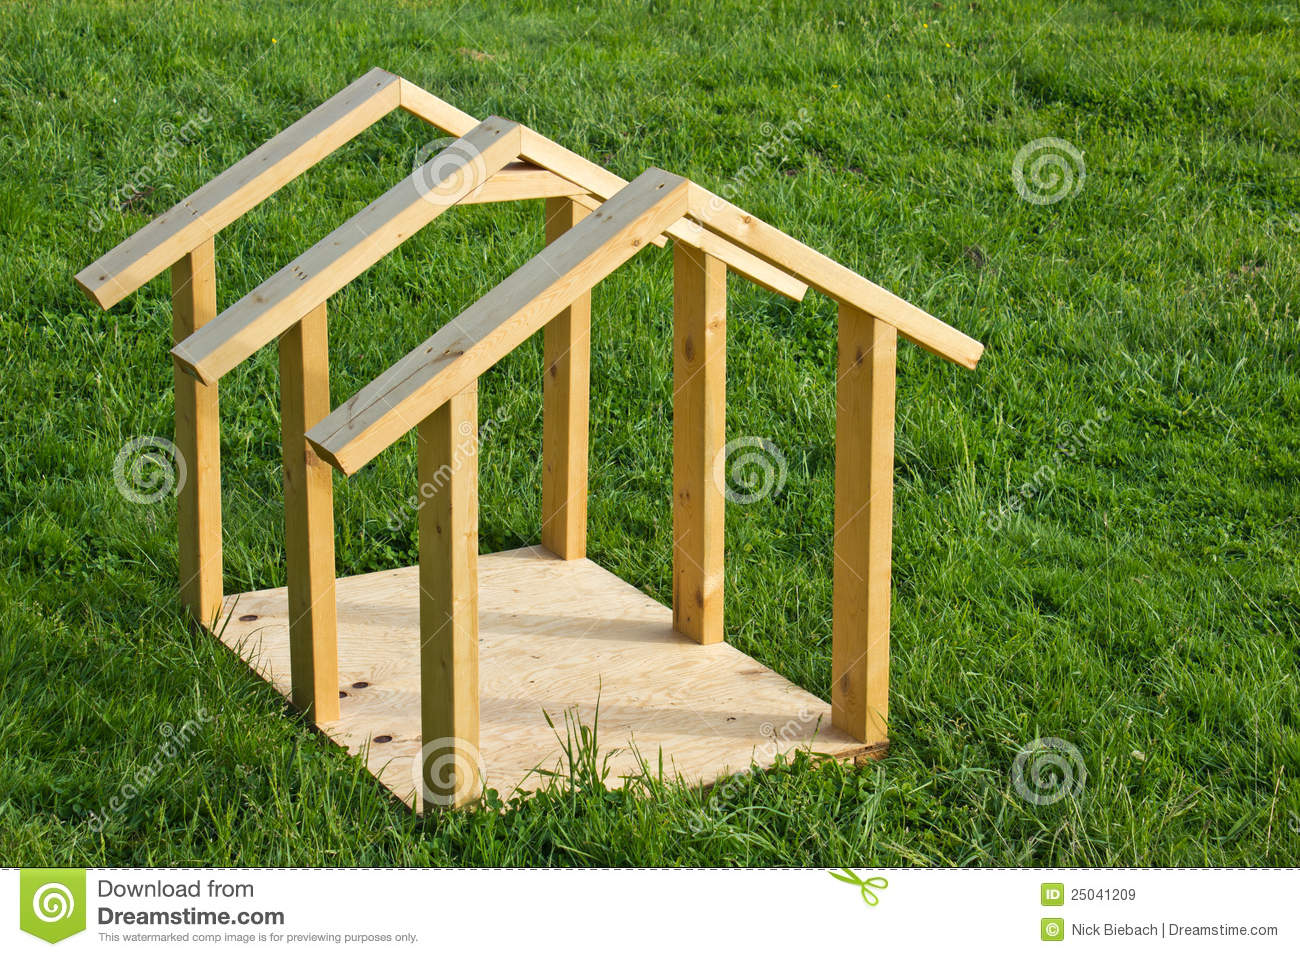 Dog house wood frame stock image image of clean for Build a house online free